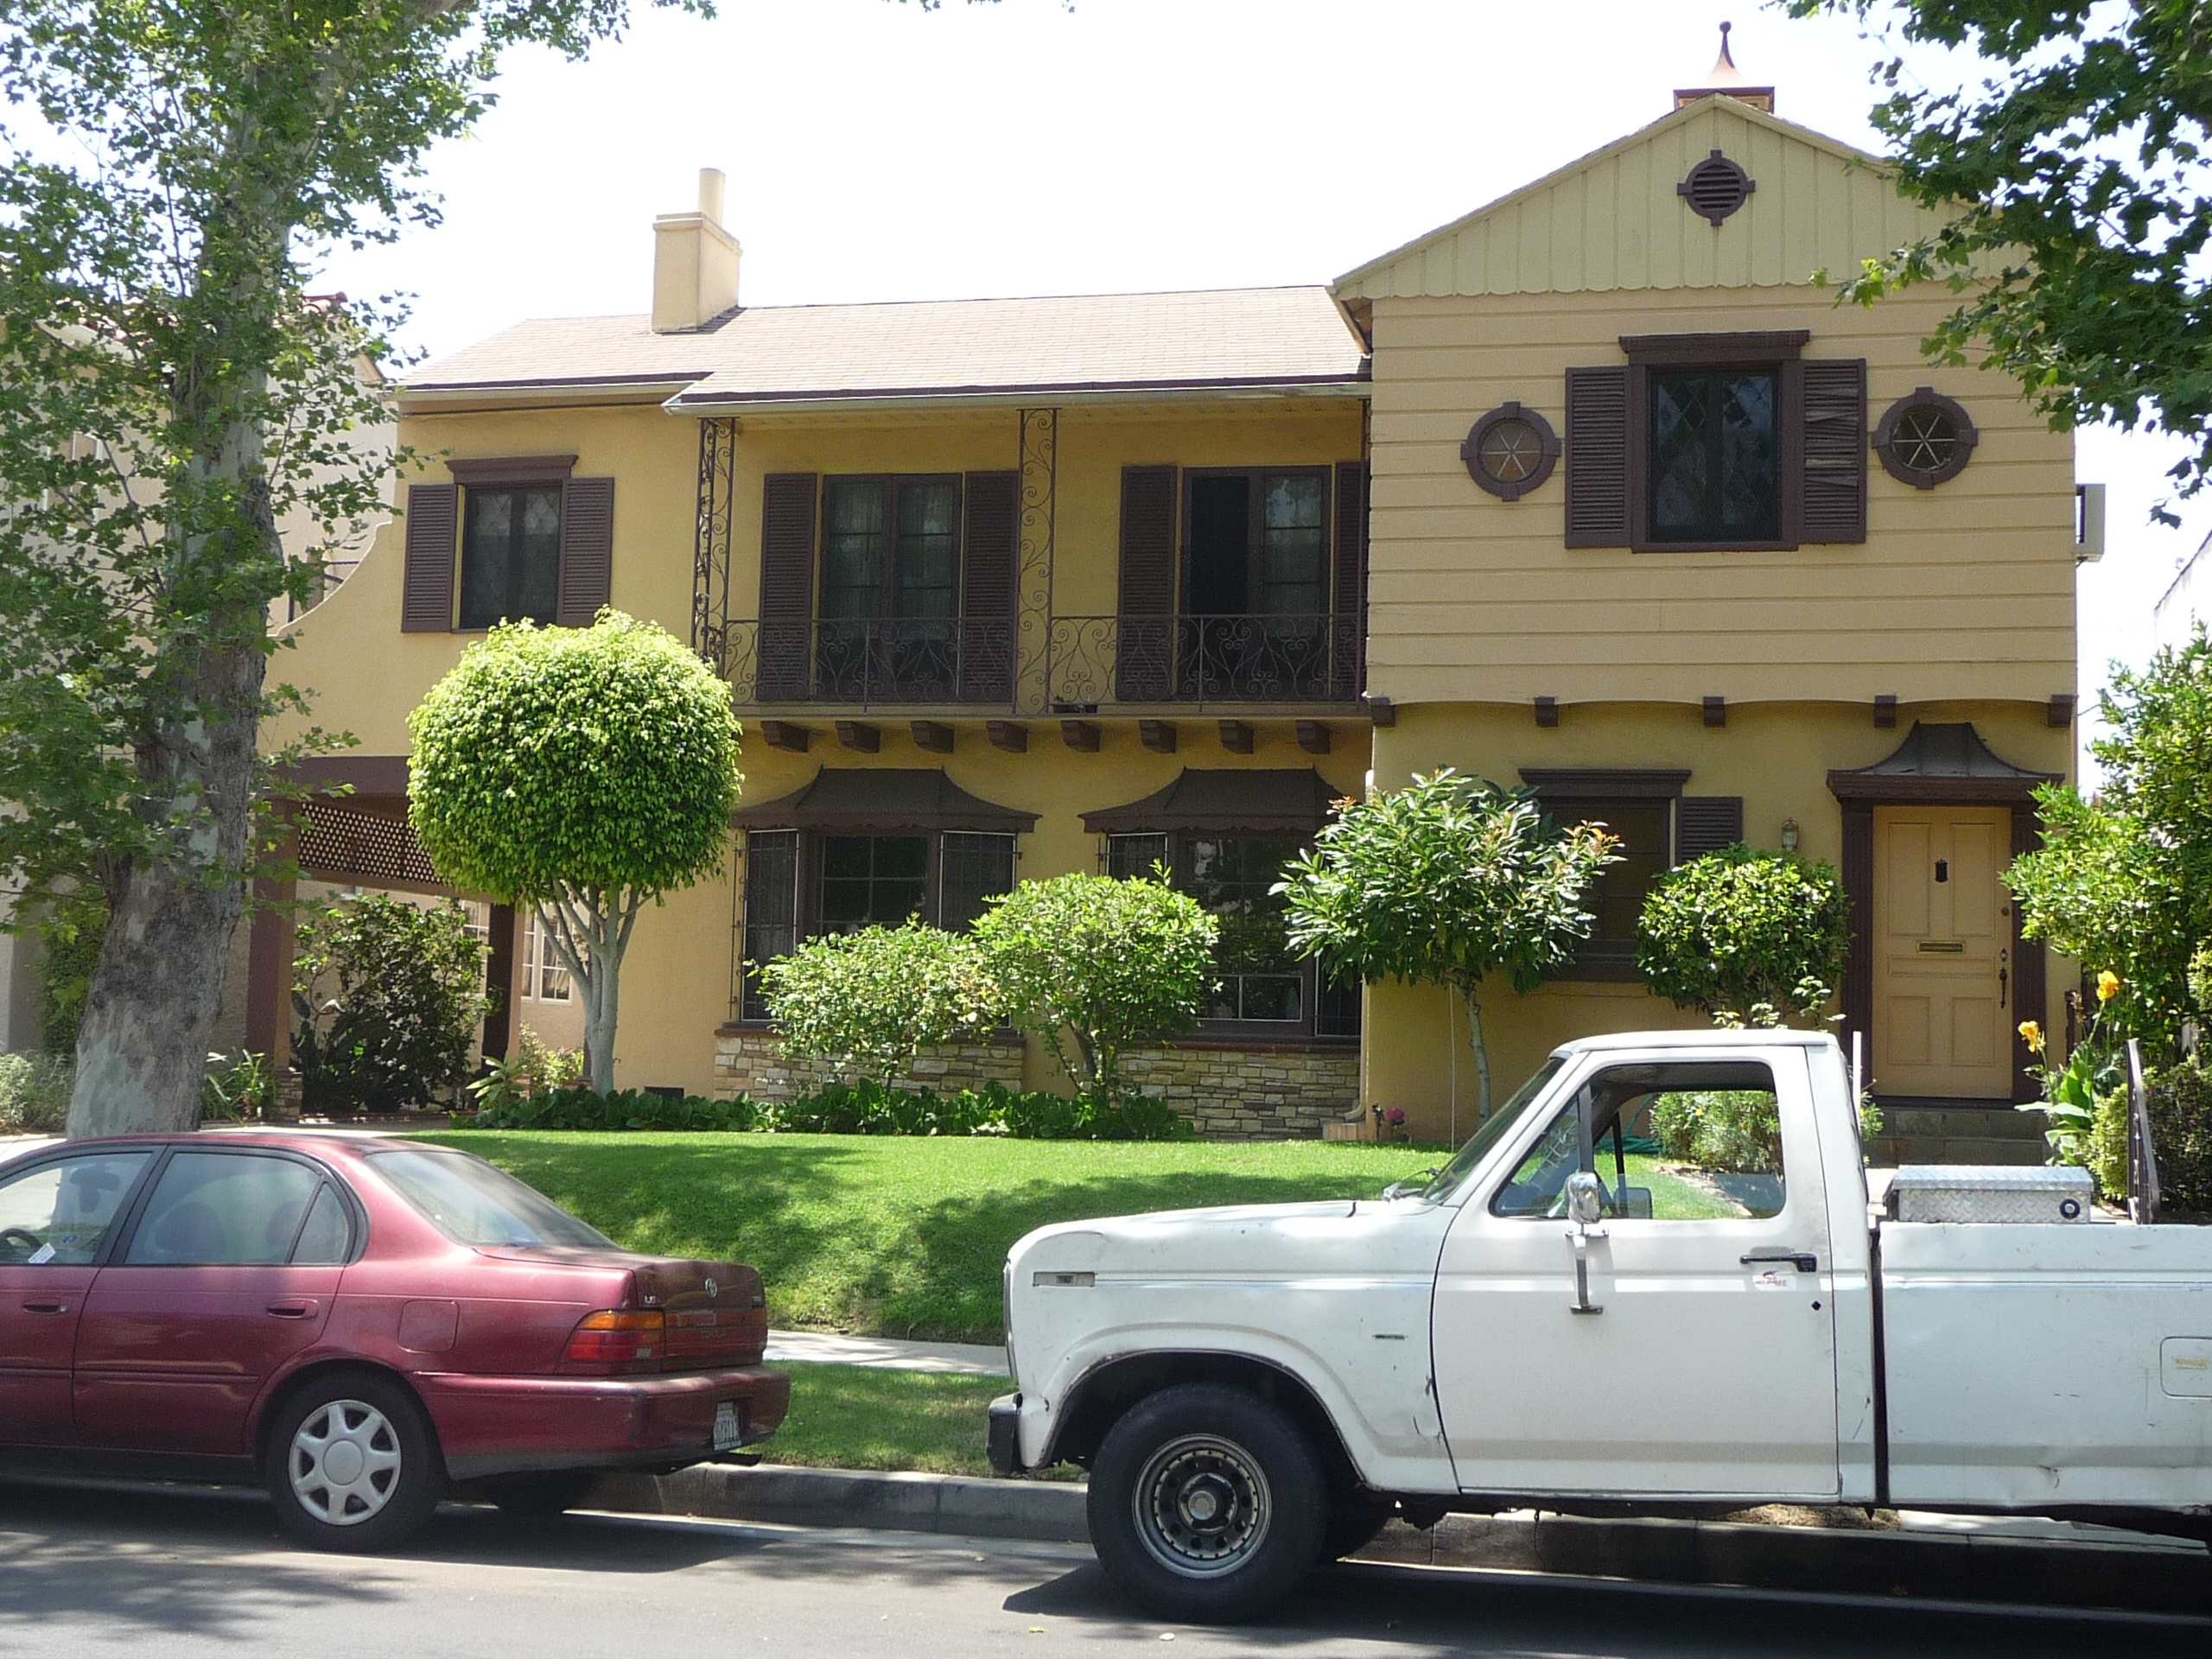 363 N MANSFIELD AVE - PHOTO